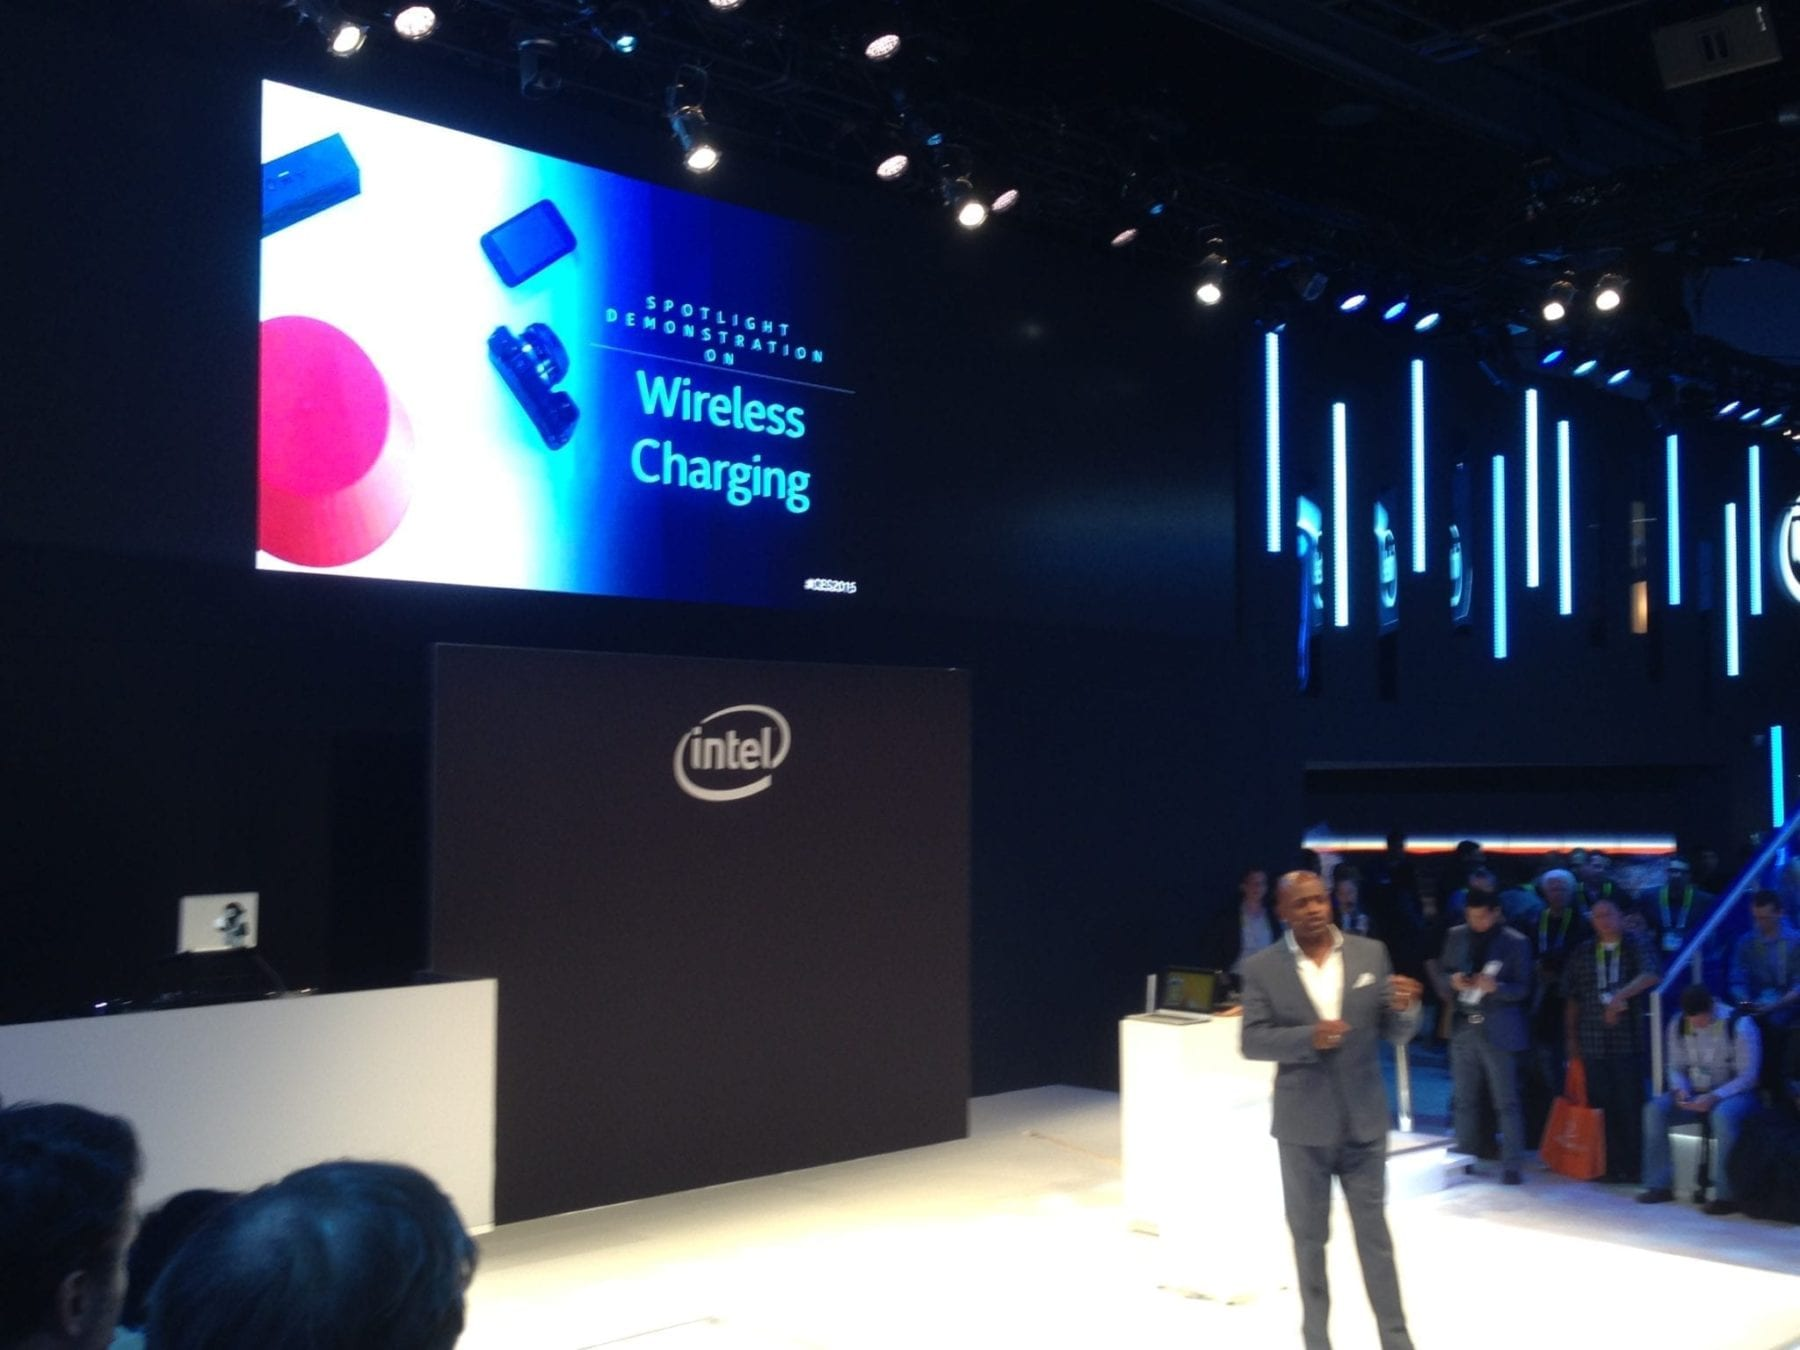 Intel Wireless Charging at CES 2015